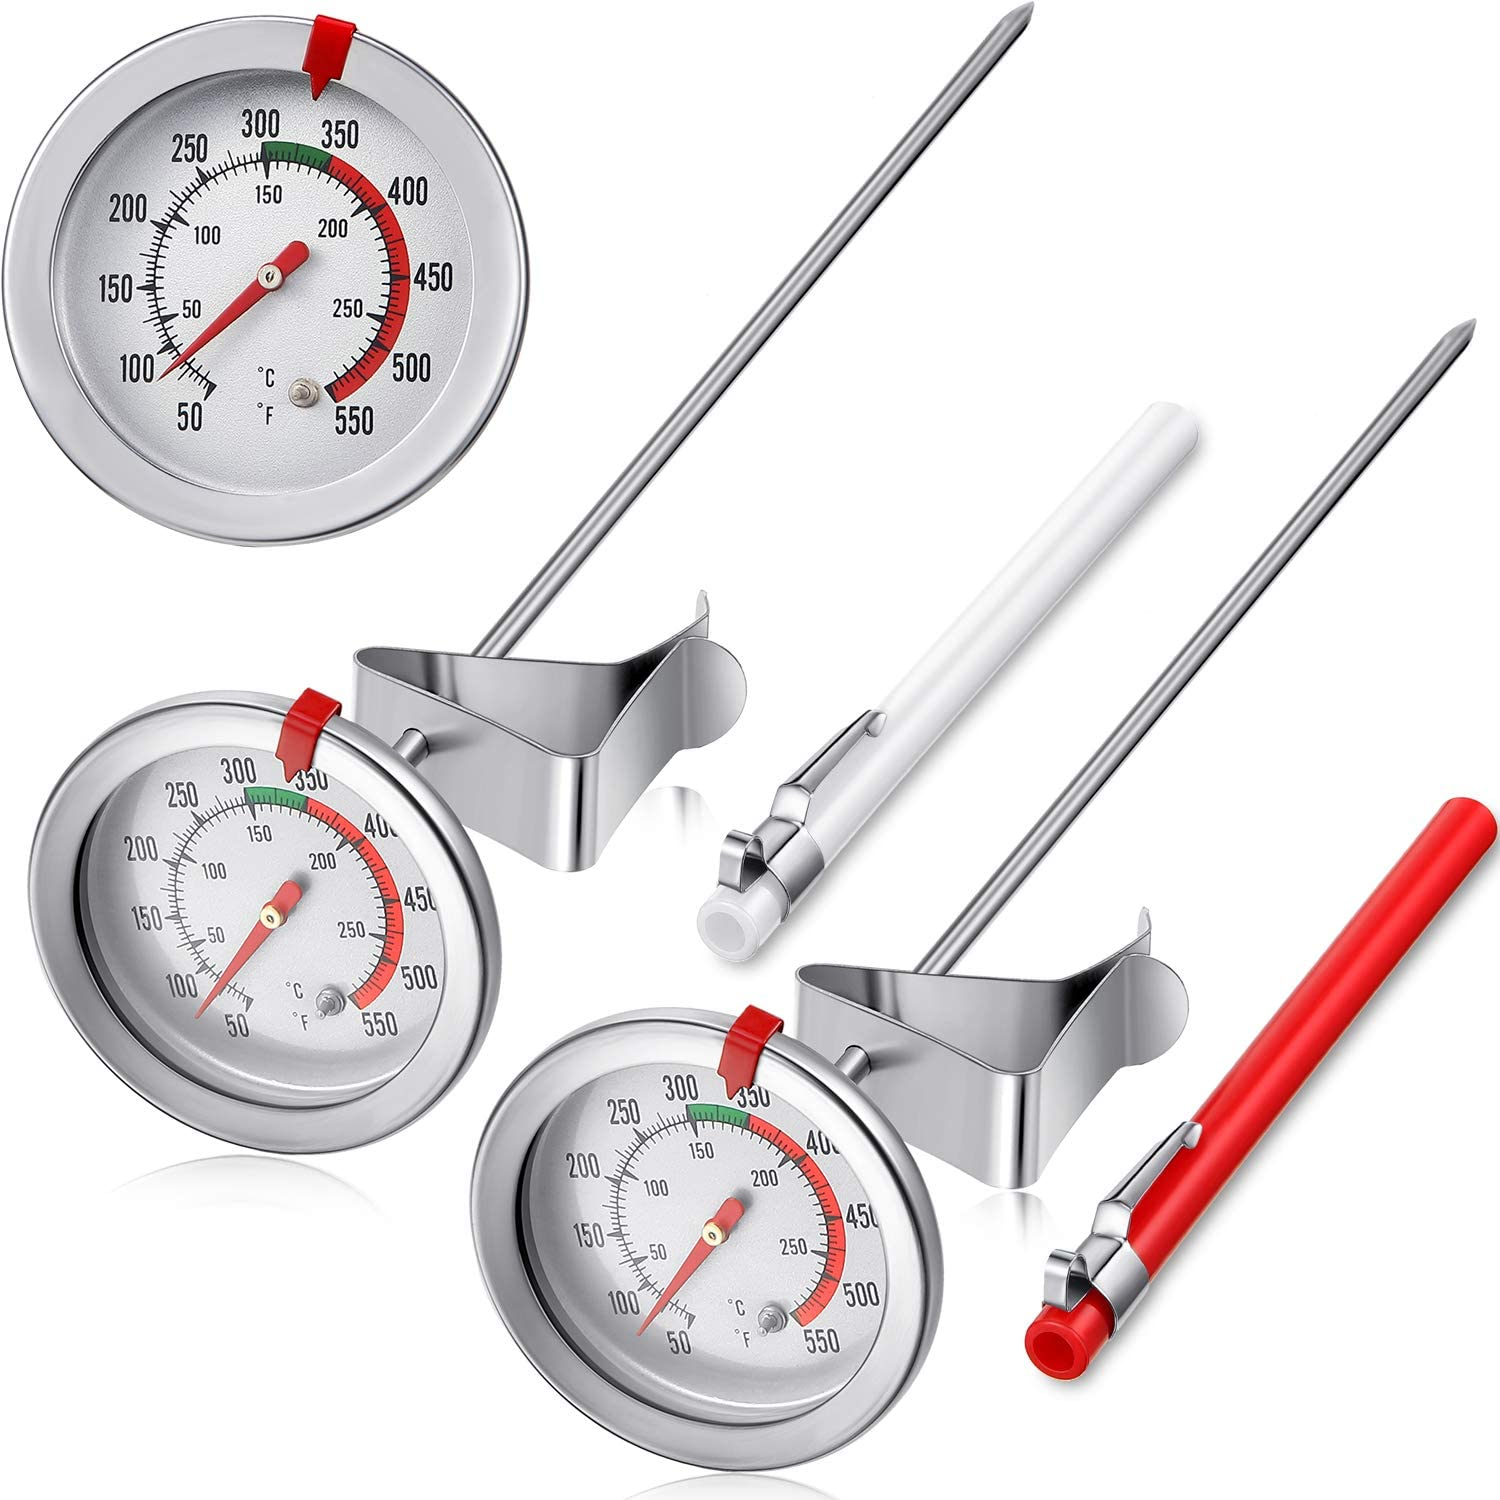 2 Pieces Stainless Steel Thermometer Instant Read 2 Inch Dial Thermometer 7.8 or 11.8 Inch Long Stem Fry Thermometer with Metal Retaining Clip and 2 Pieces Plastic Sleeves (11.8 Inch)